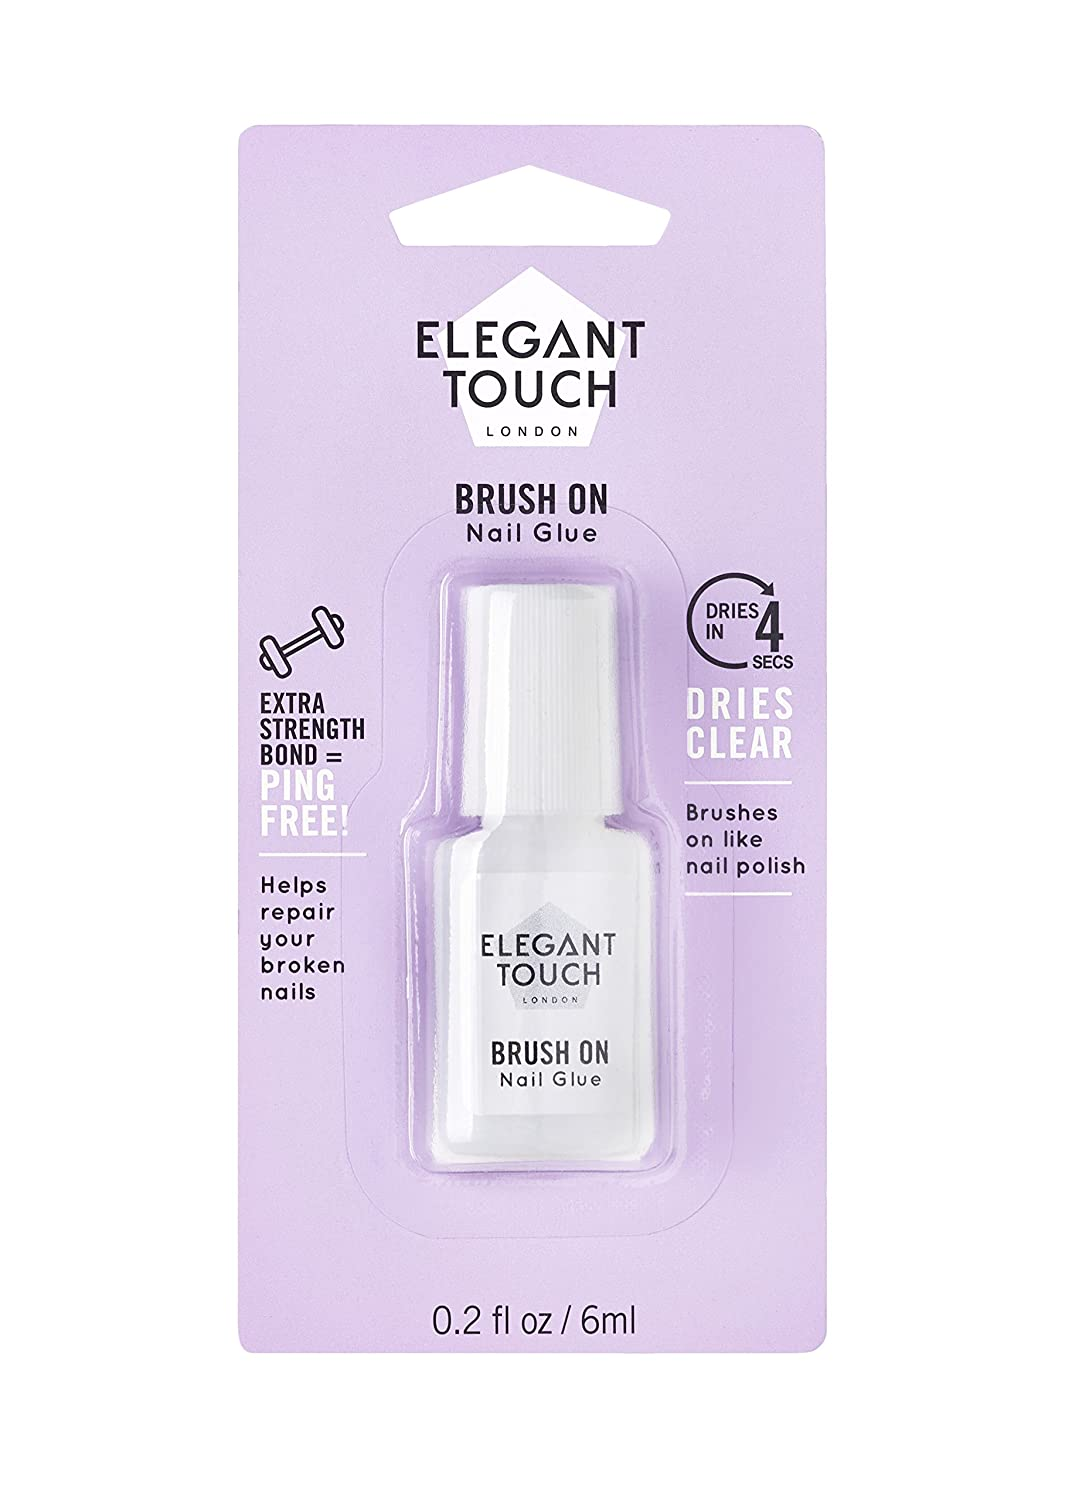 Elegant Touch Brush On Nail Glue 6ml 4002007 B000ODO4RI